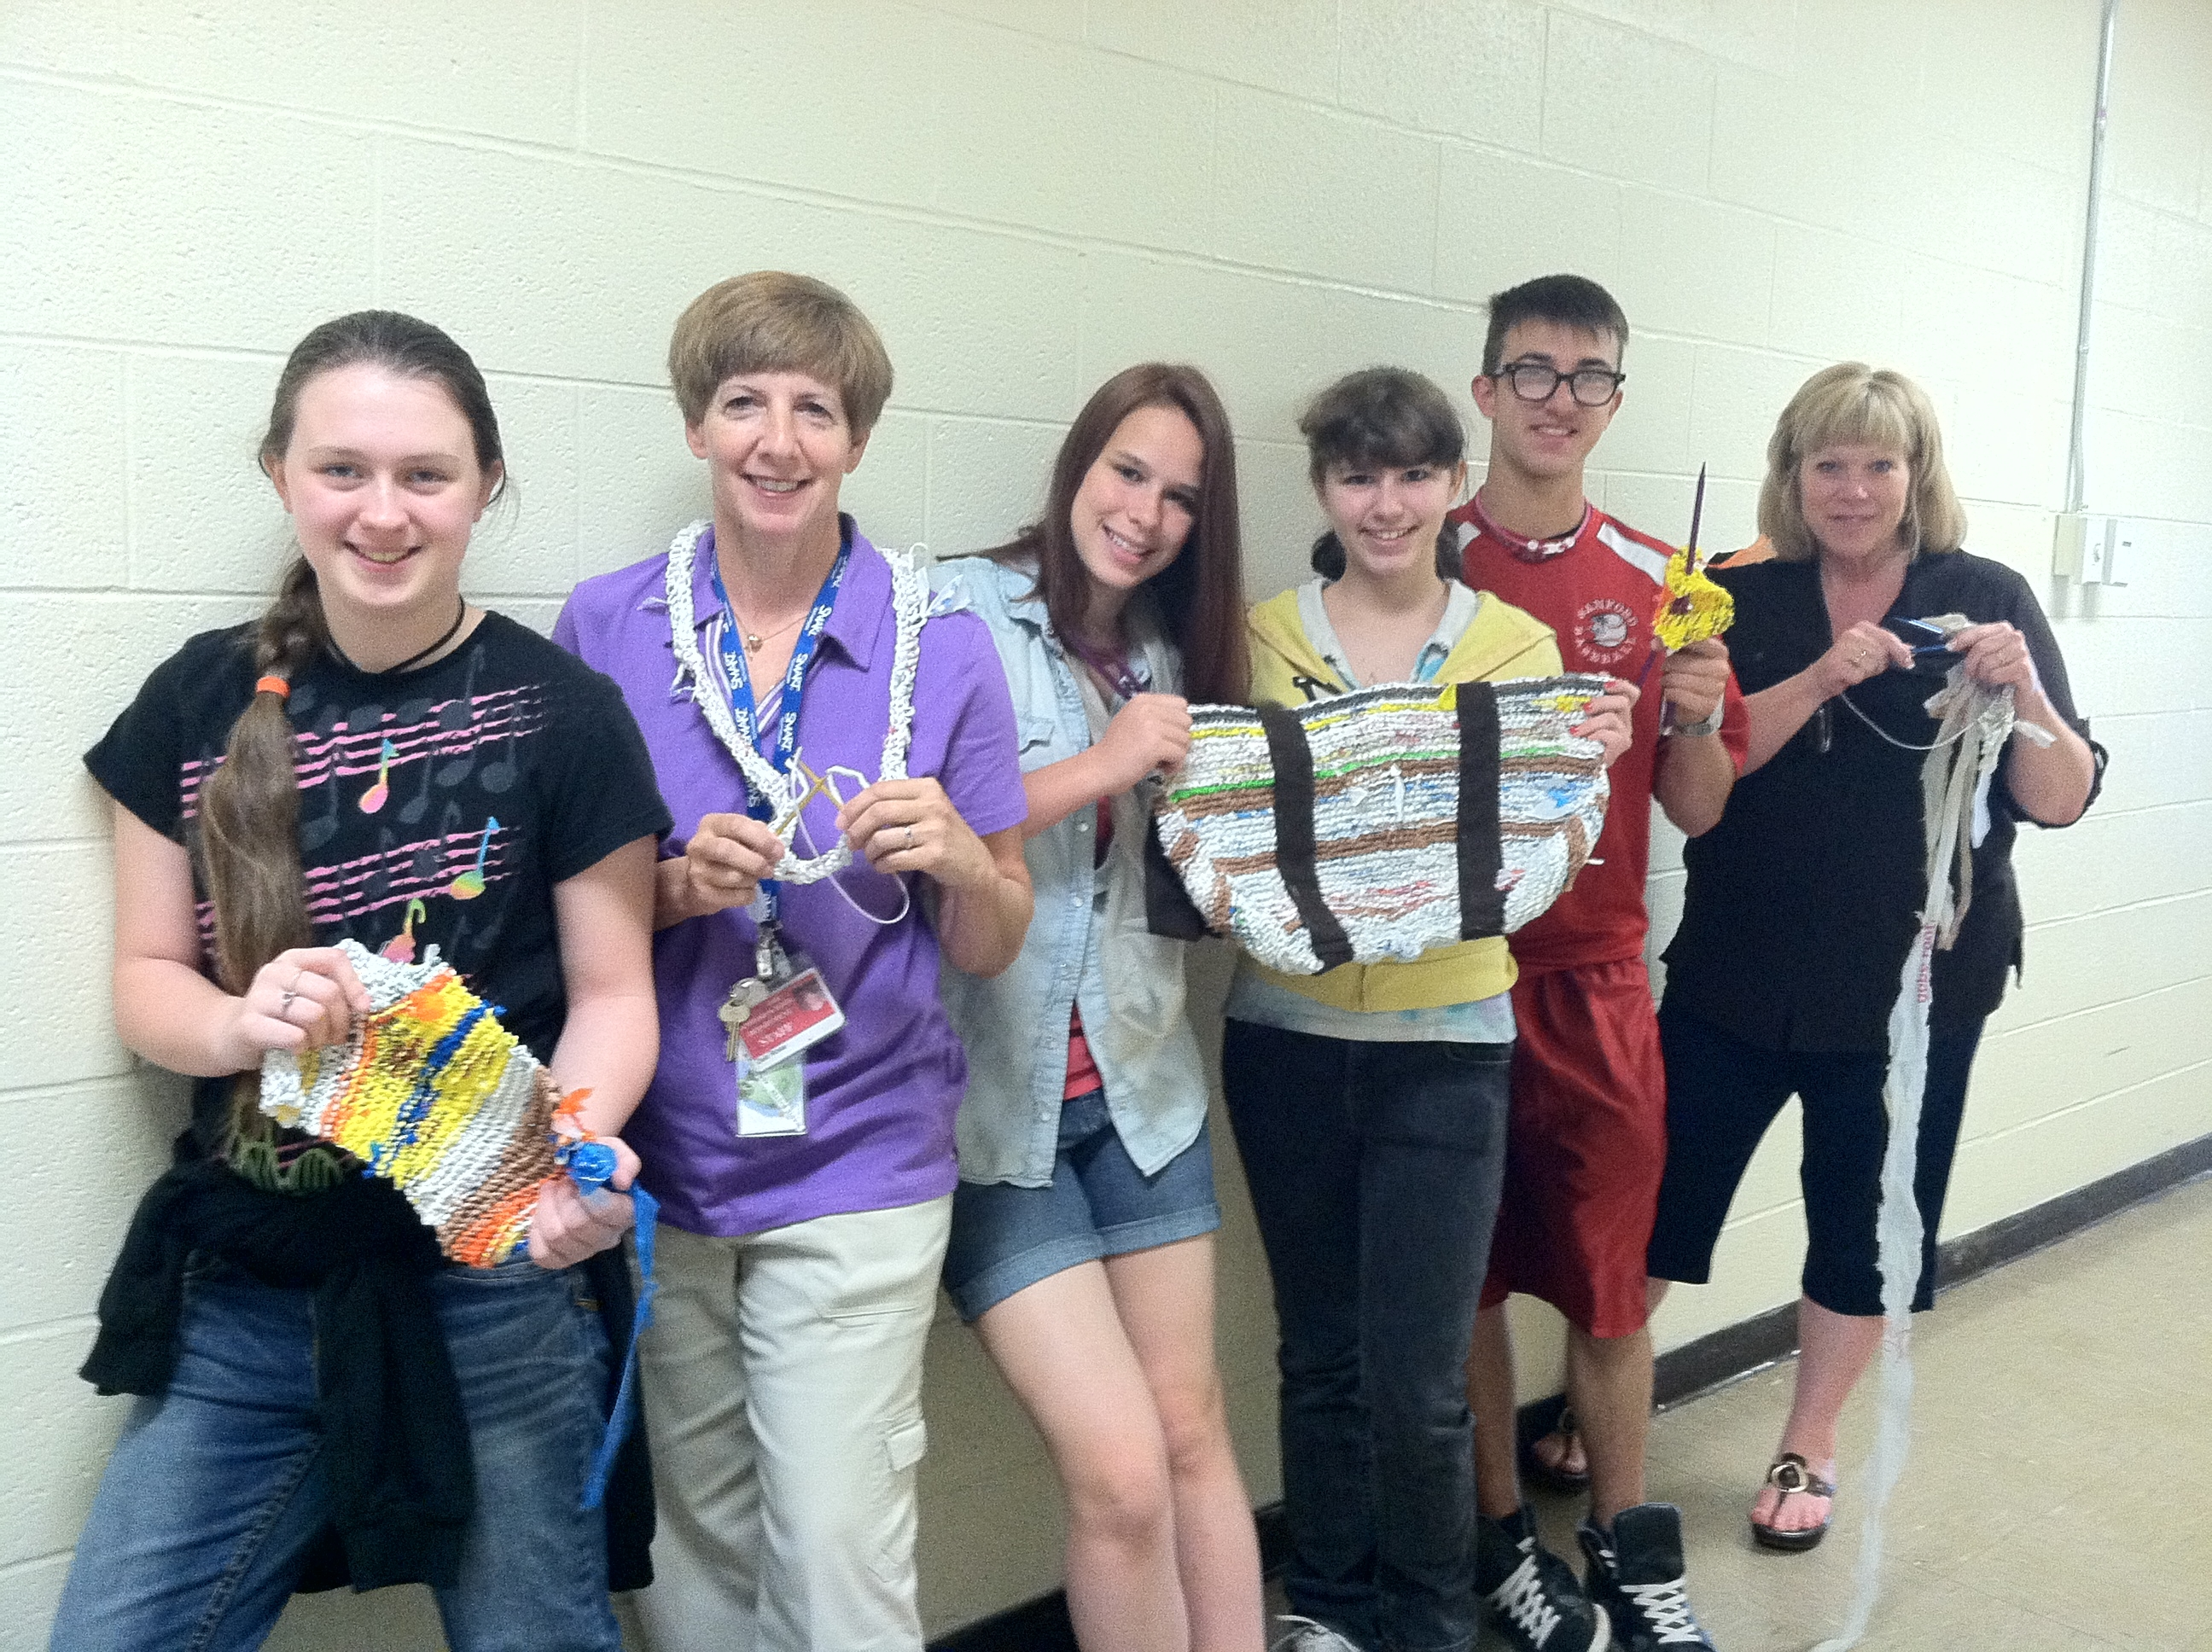 Sanford Junior High eighth graders competed nationally in the Siemen's We Can Change the World Challenge with their project aimed to decrease plastic bag use.